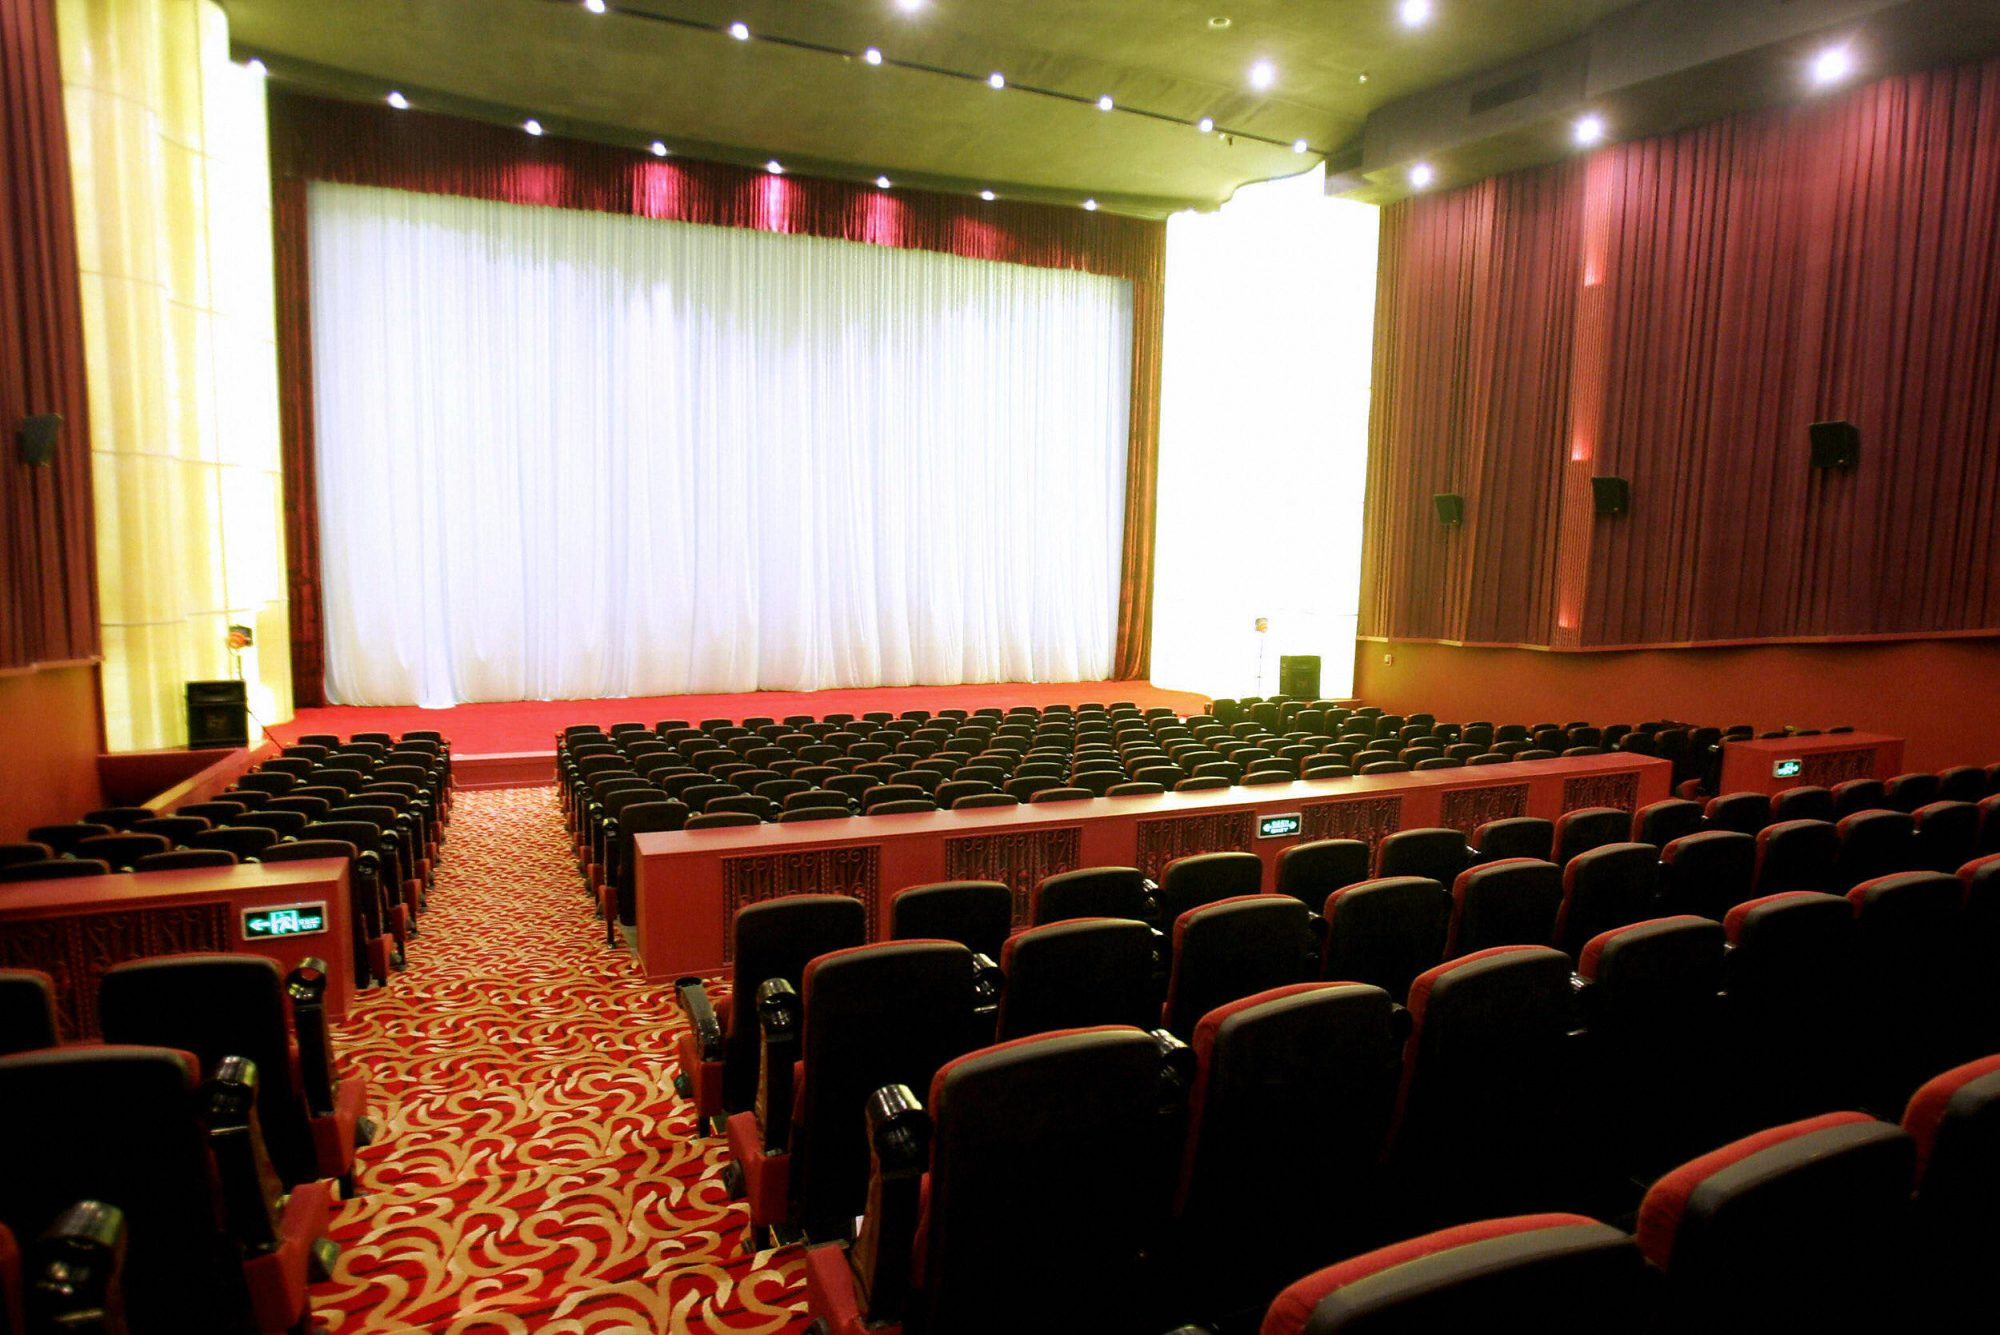 A newly installed cinema seating at Beij